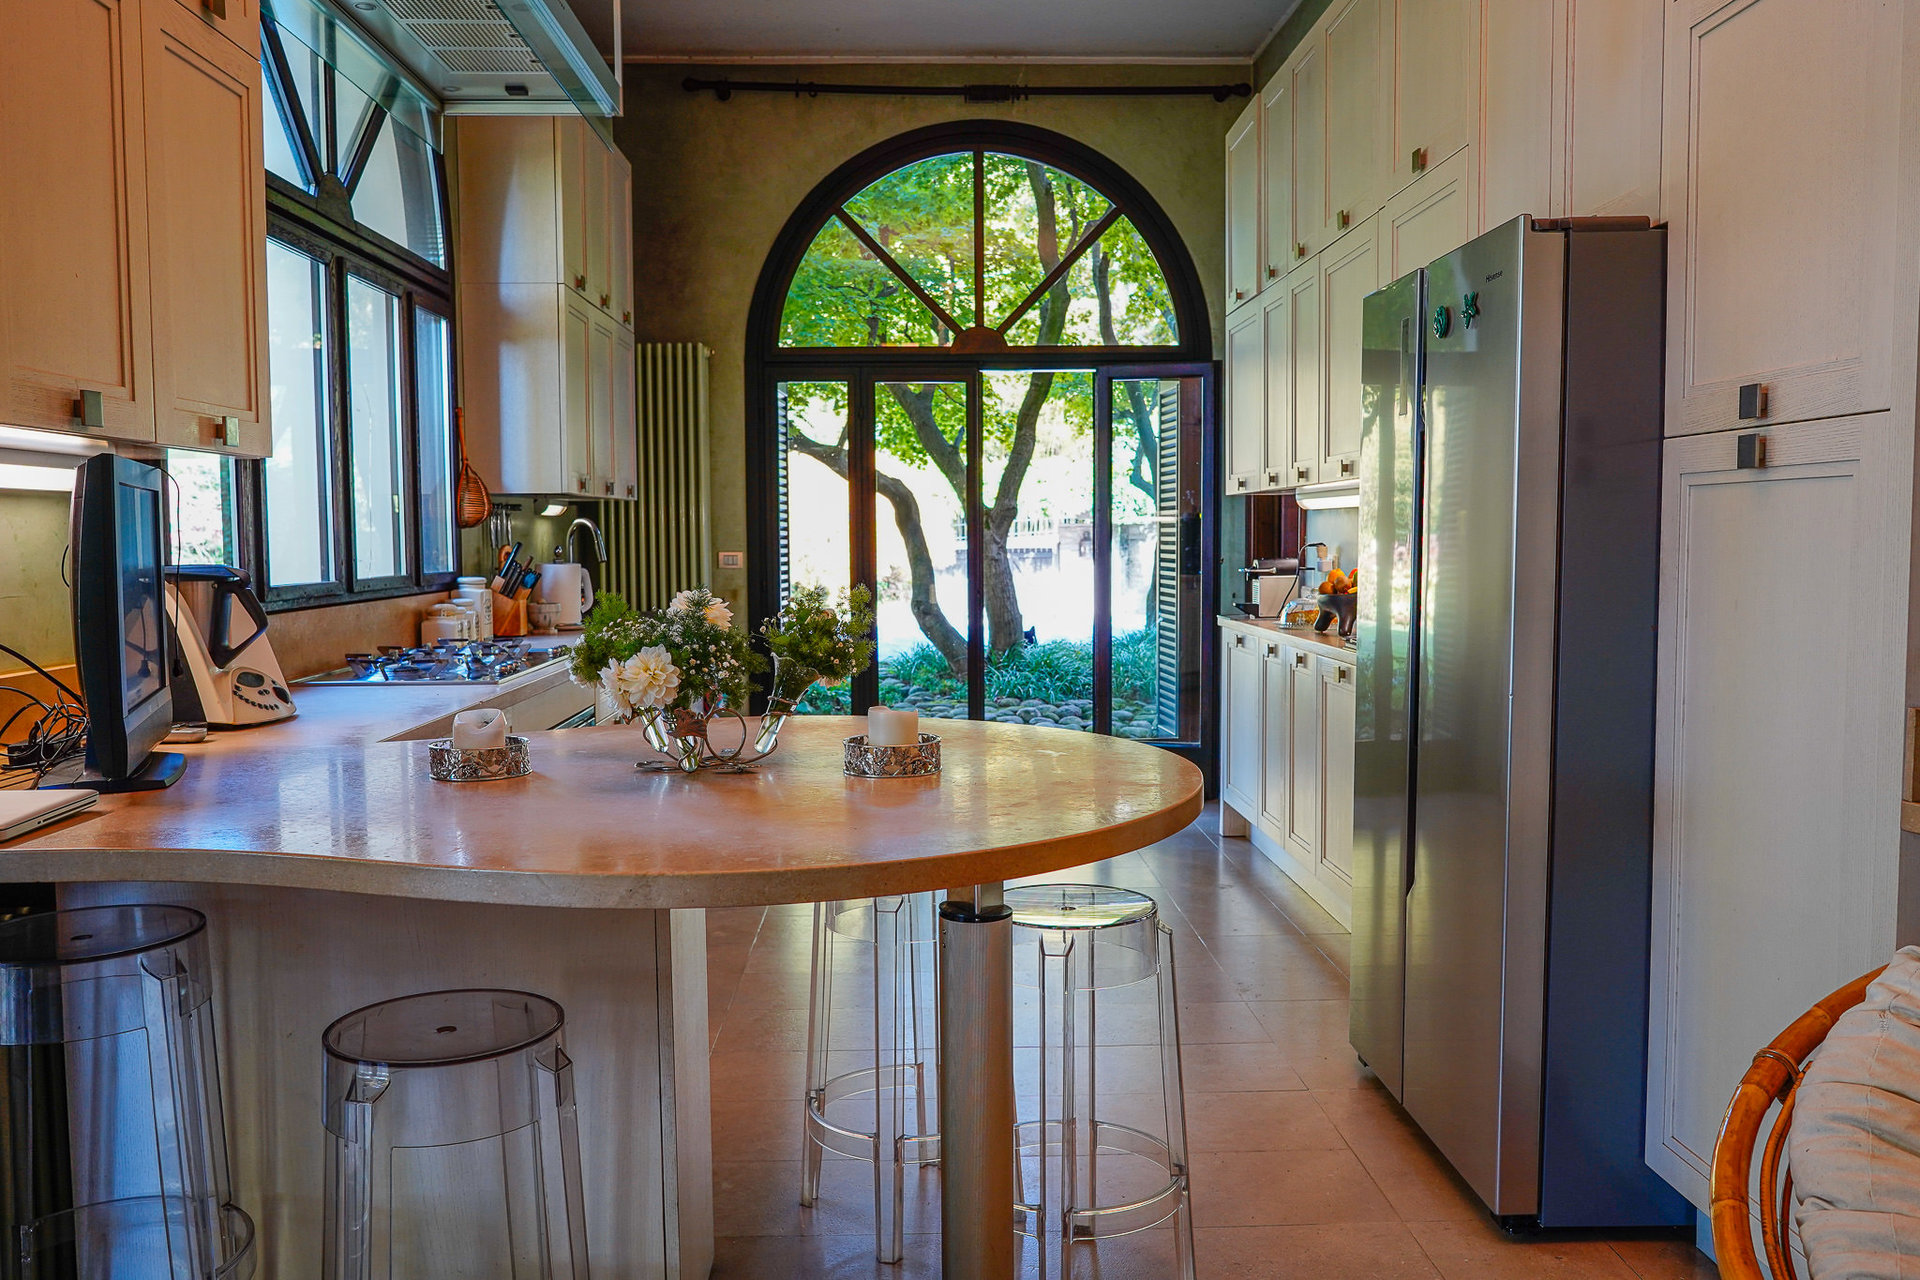 Period villa with park for sale on Ticino River - modern kitchen